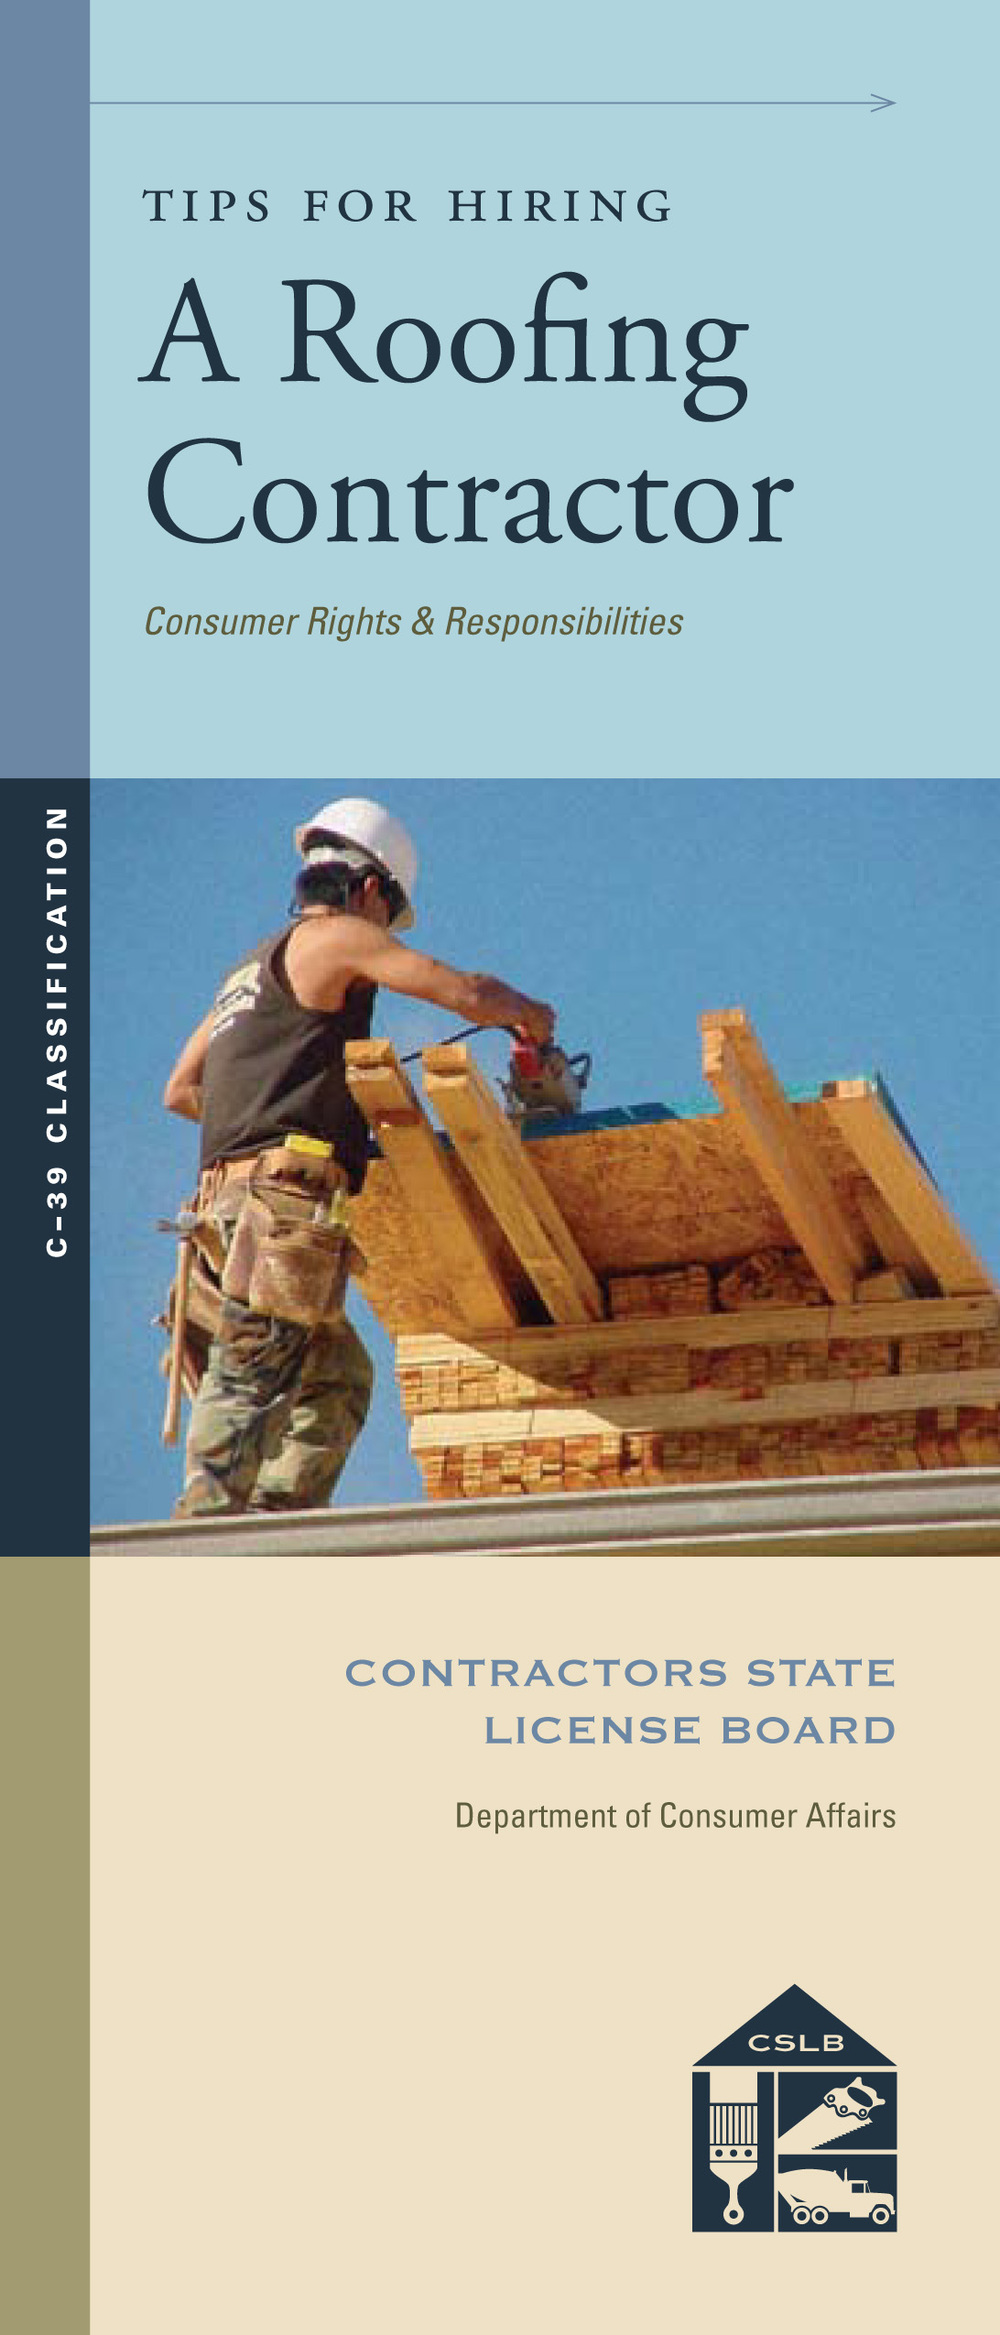 RoofingContractorGuideCover.jpg